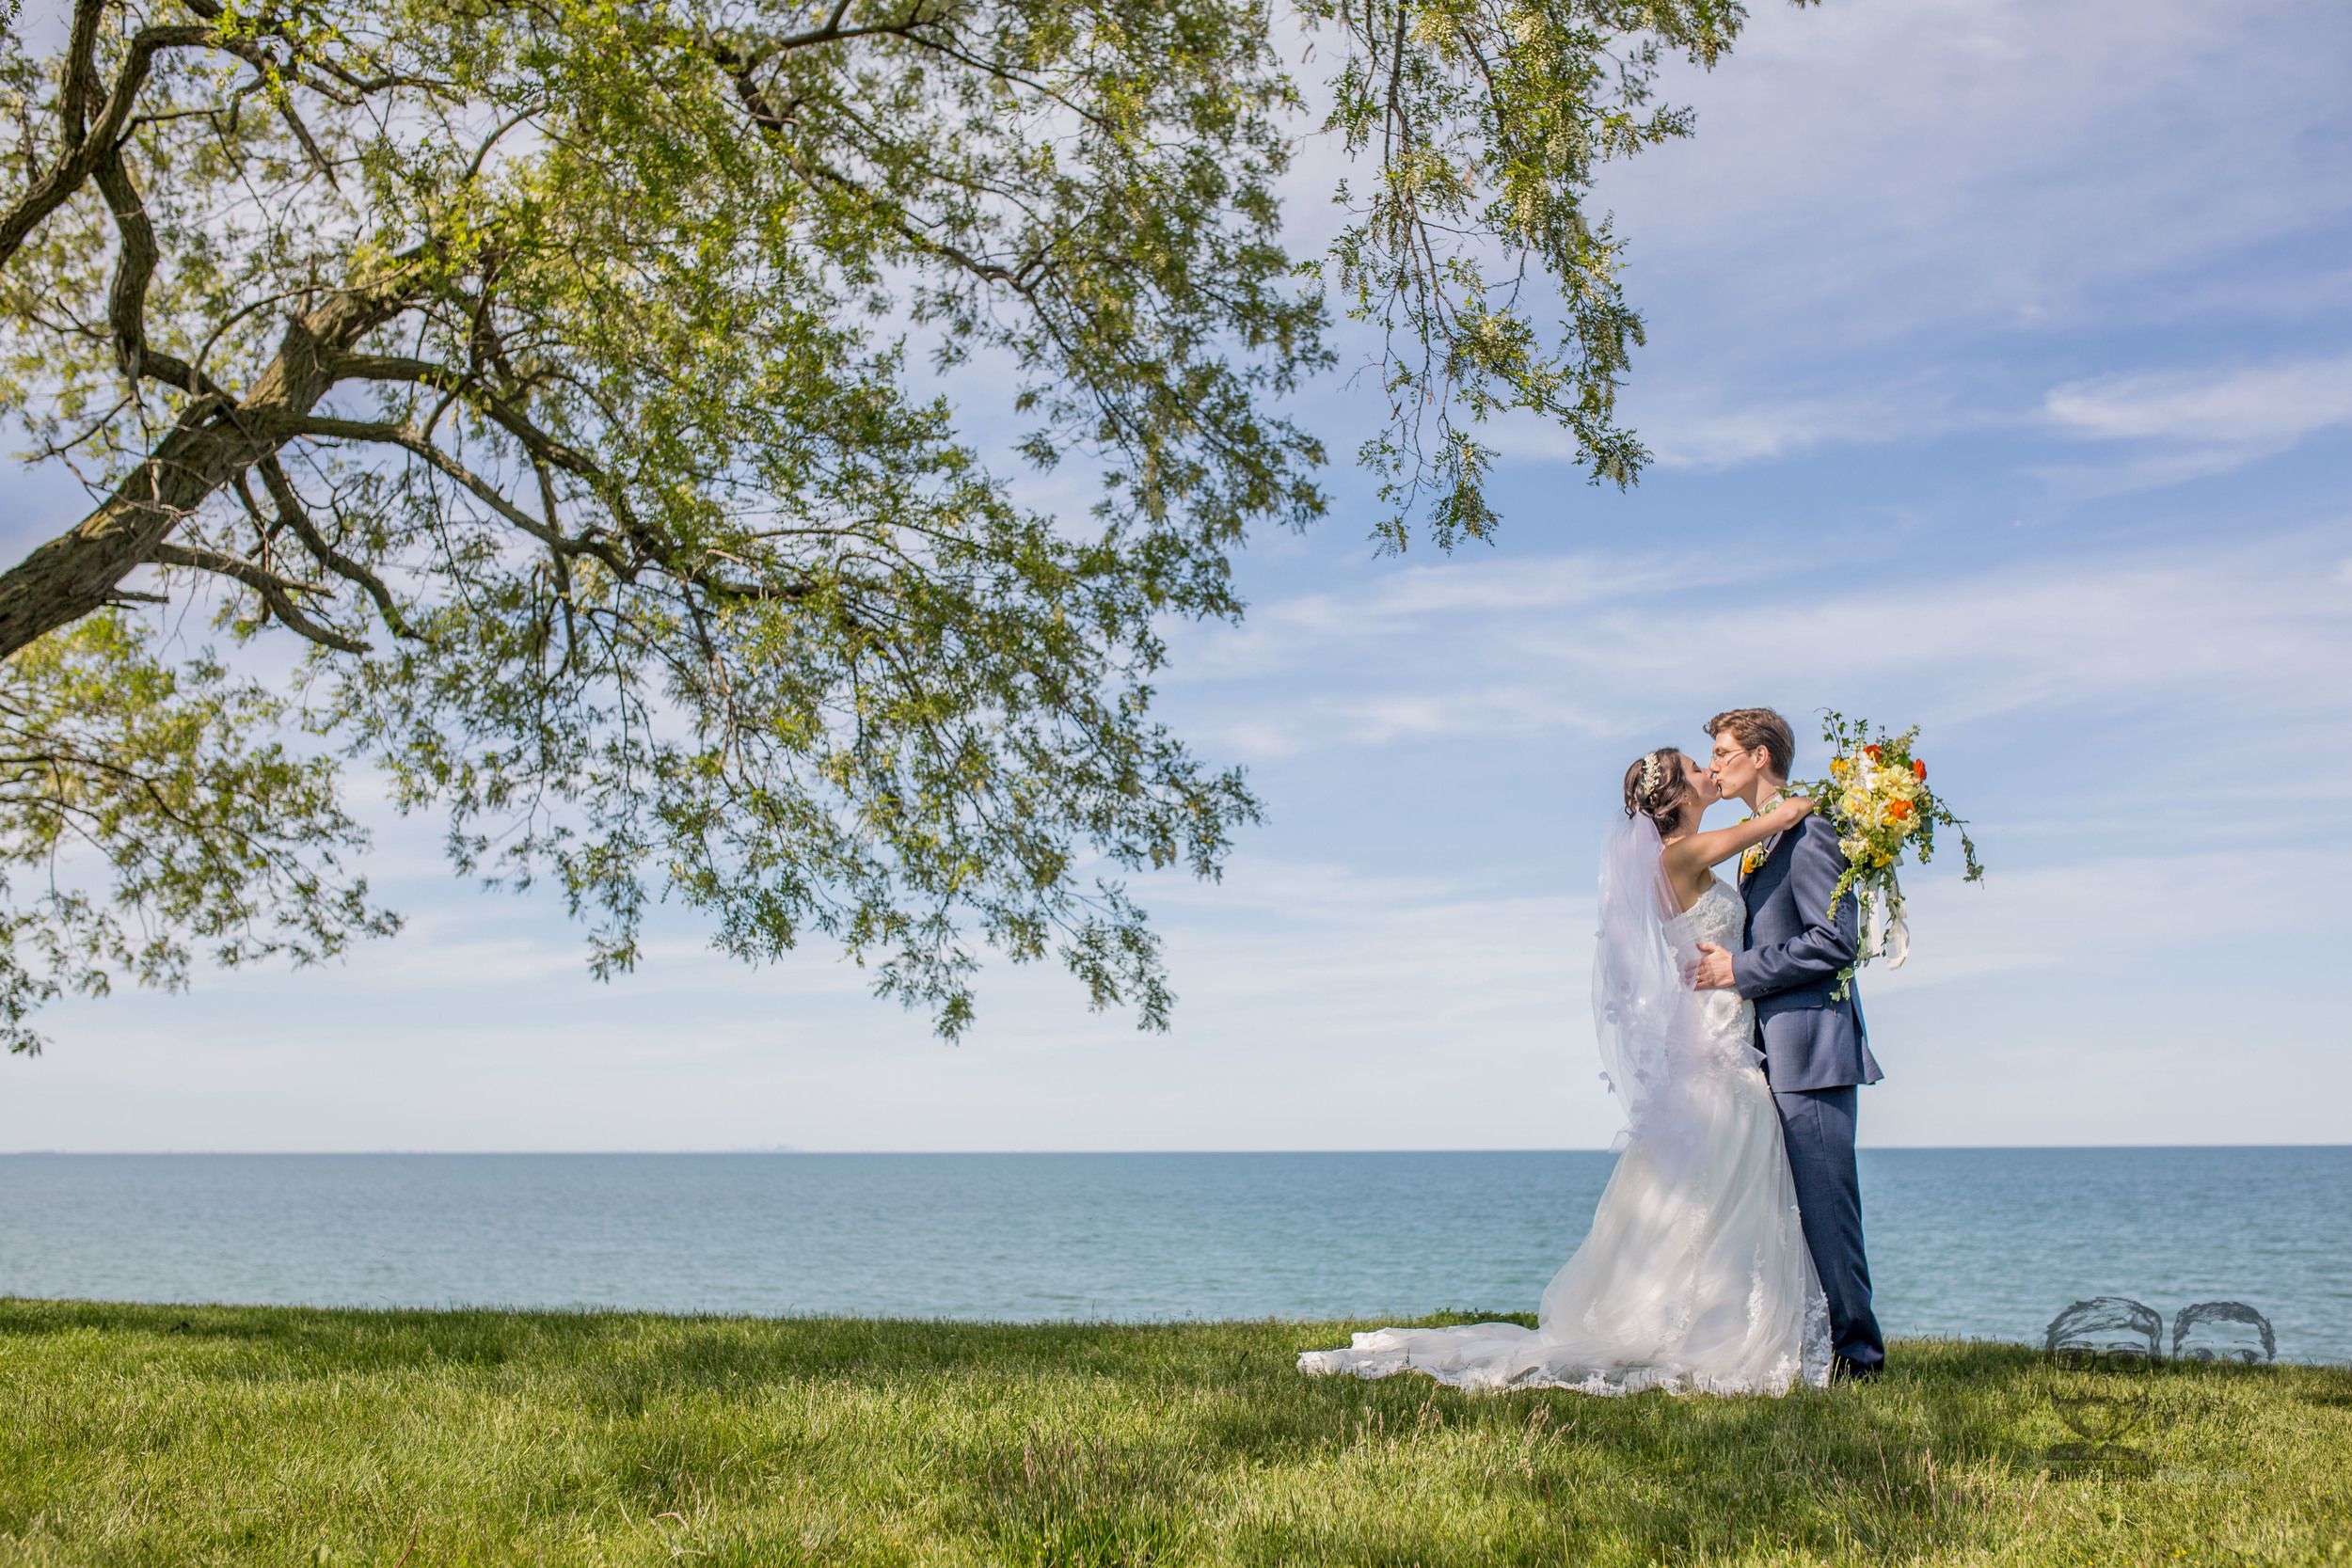 047Toronto Wedding Photographers and Videographers-Jono & Laynie Co.jpg